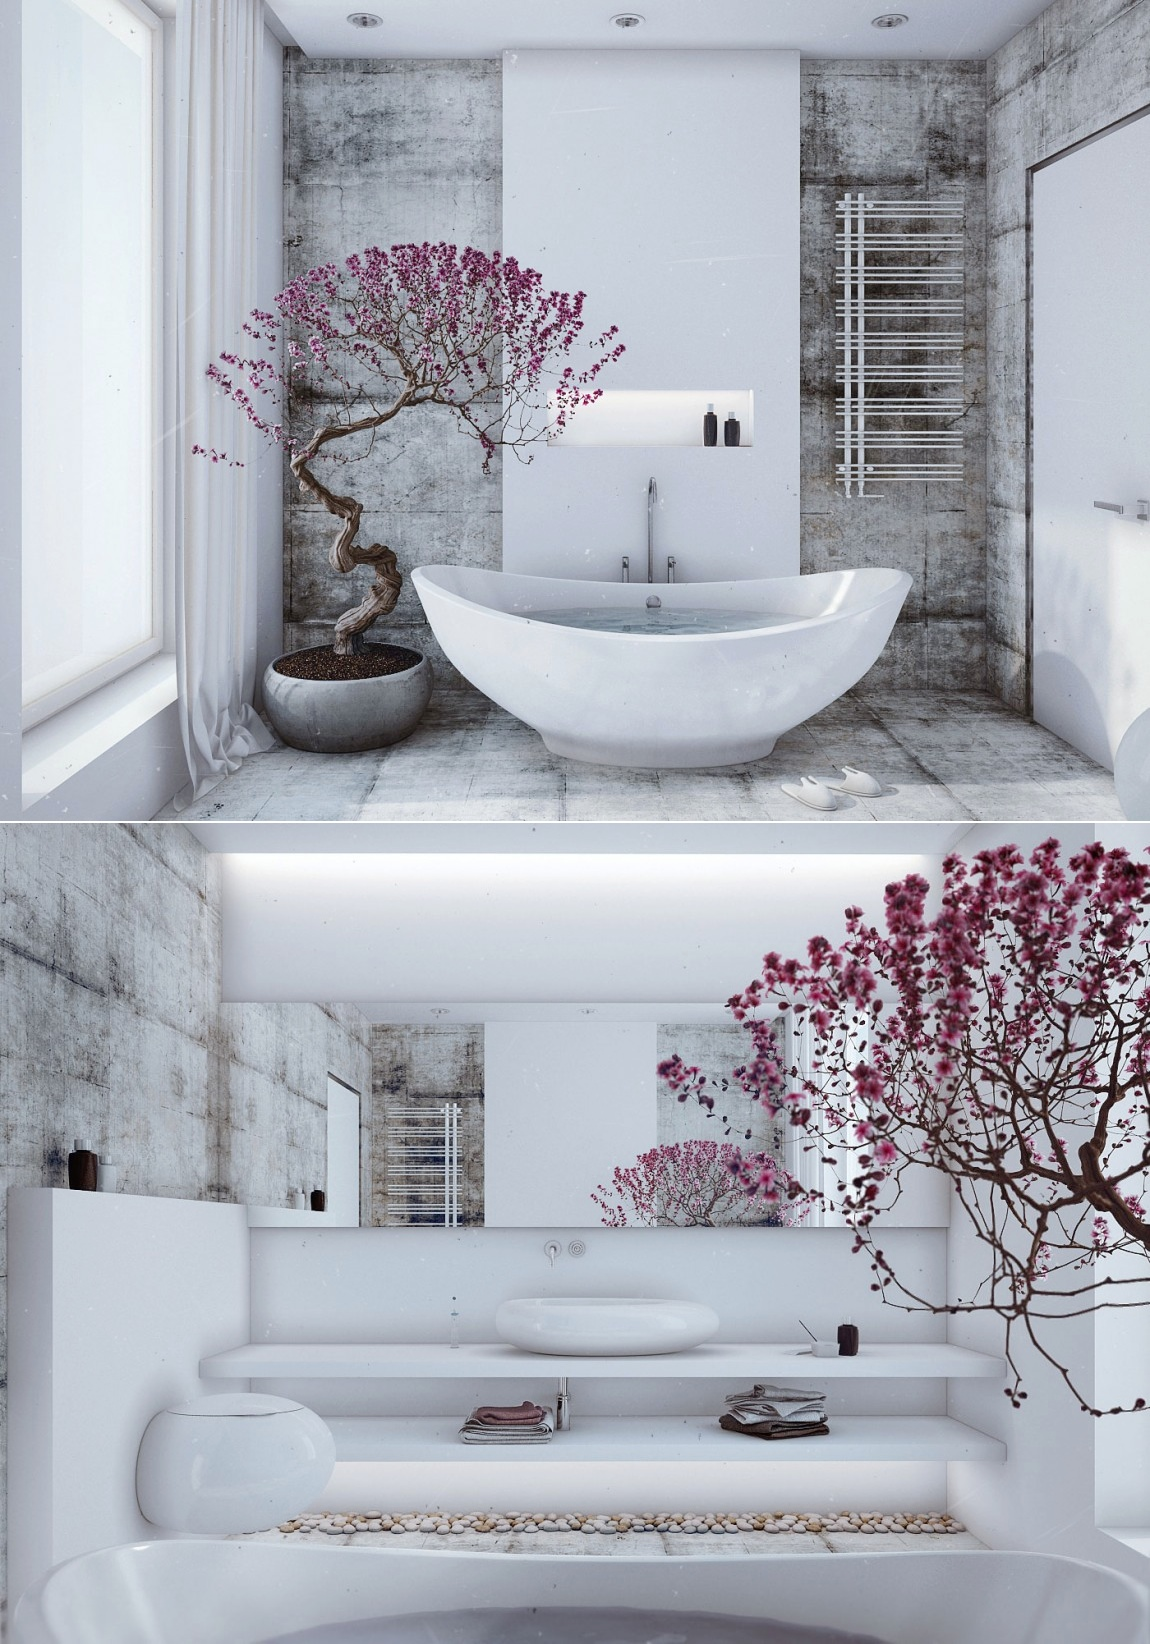 Zen bathroom design interior design ideas for Design your bathroom